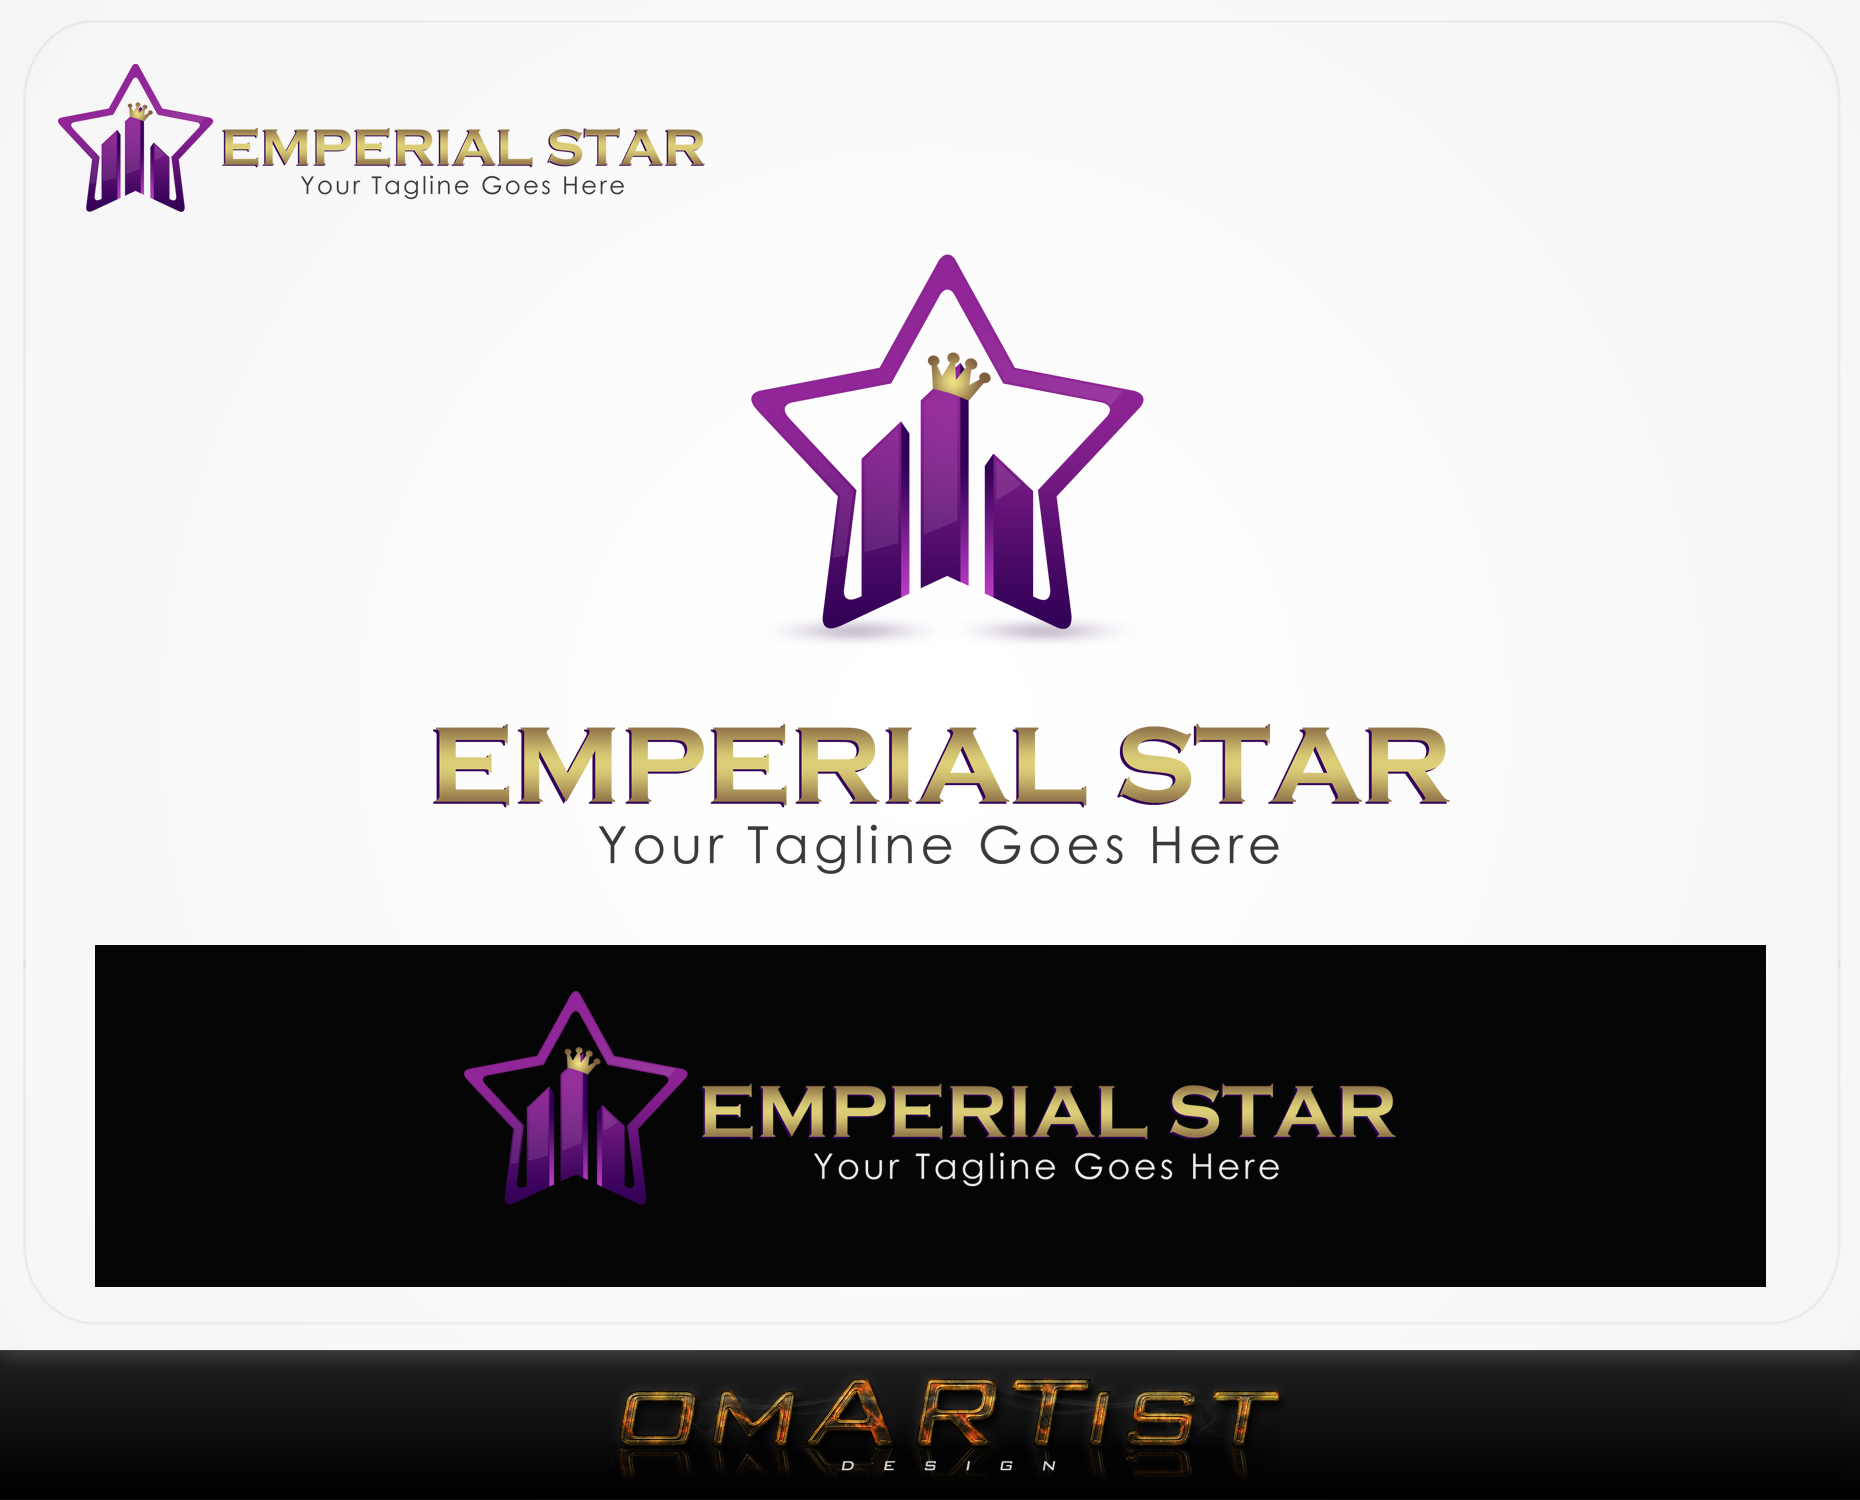 Logo Design by omARTist - Entry No. 167 in the Logo Design Contest Emperial Star Logo Design.